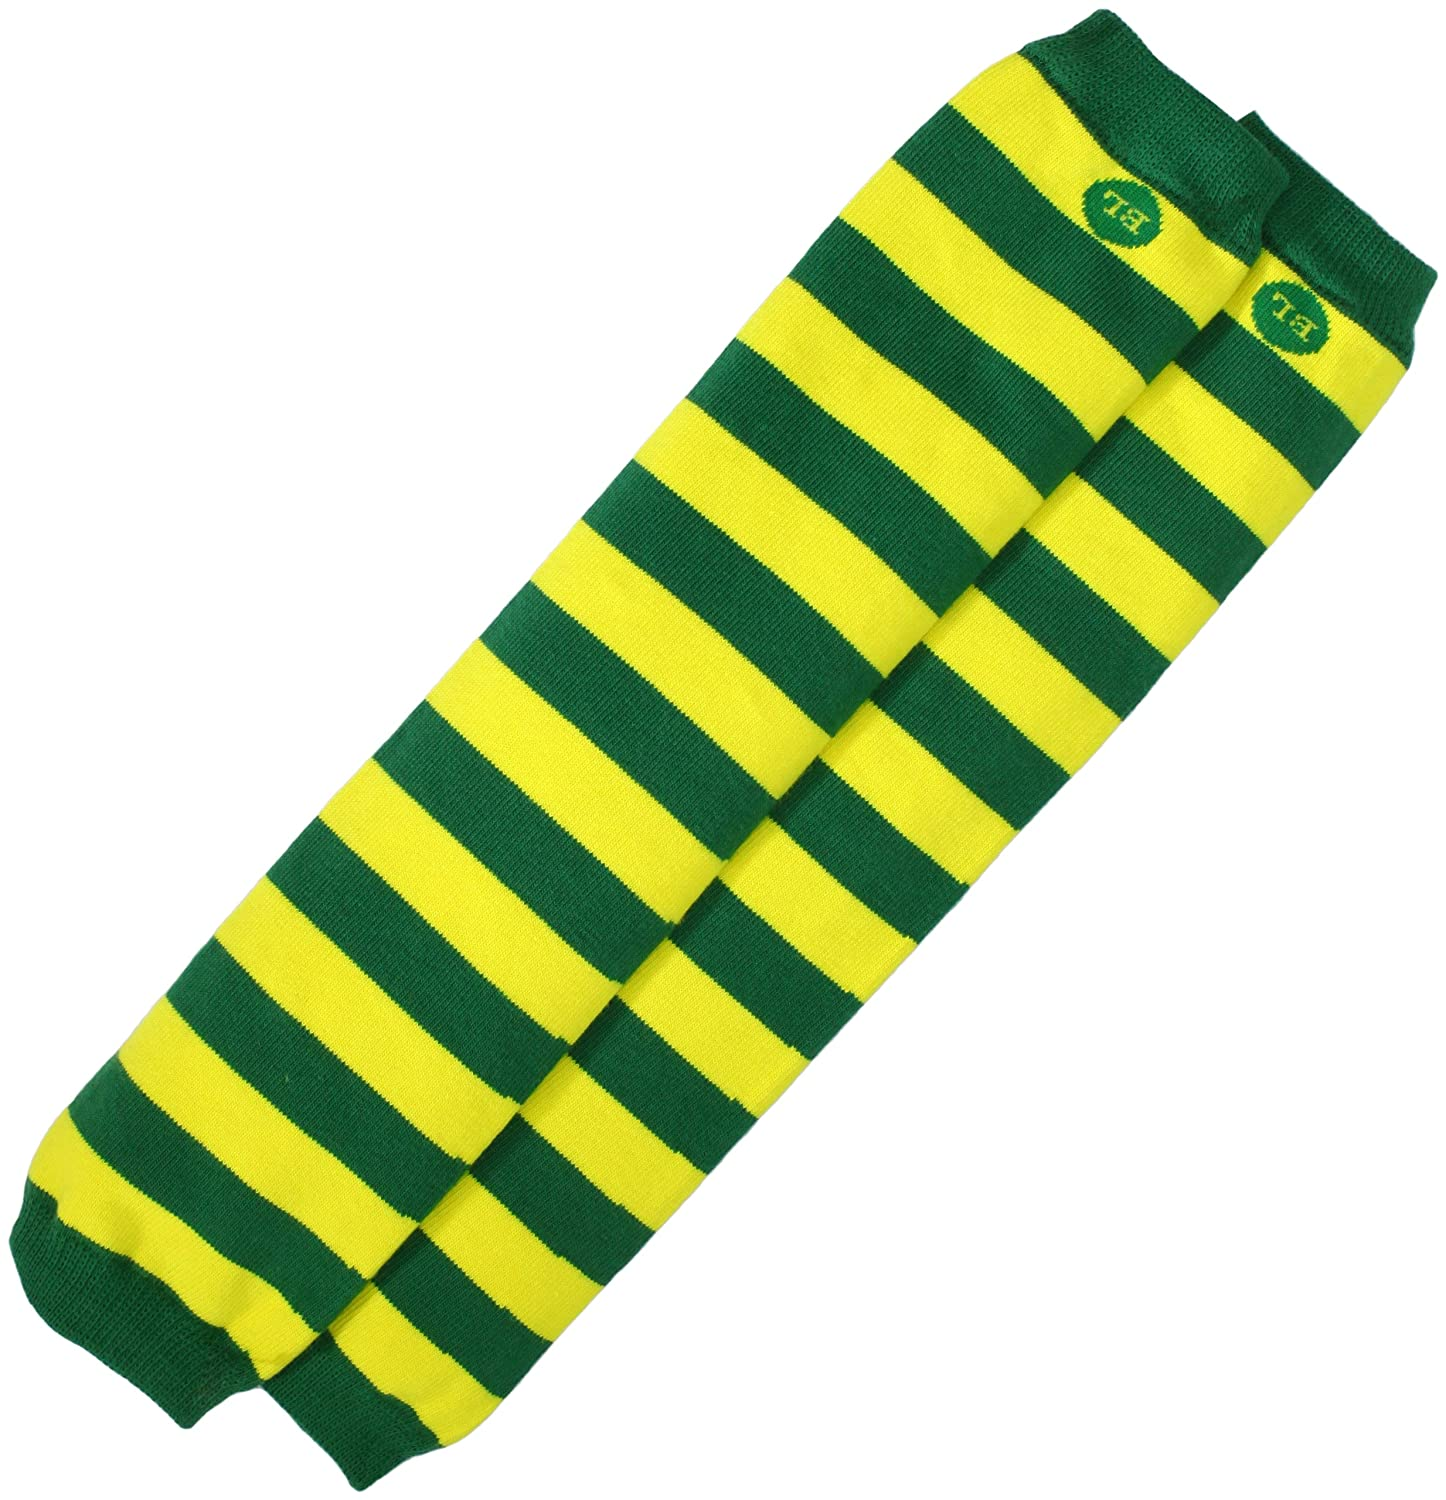 BabyLegs Unisex-Baby Infant Printed Color Arm And Leg Warmers, Yellow/Green, One Size BL12-0147